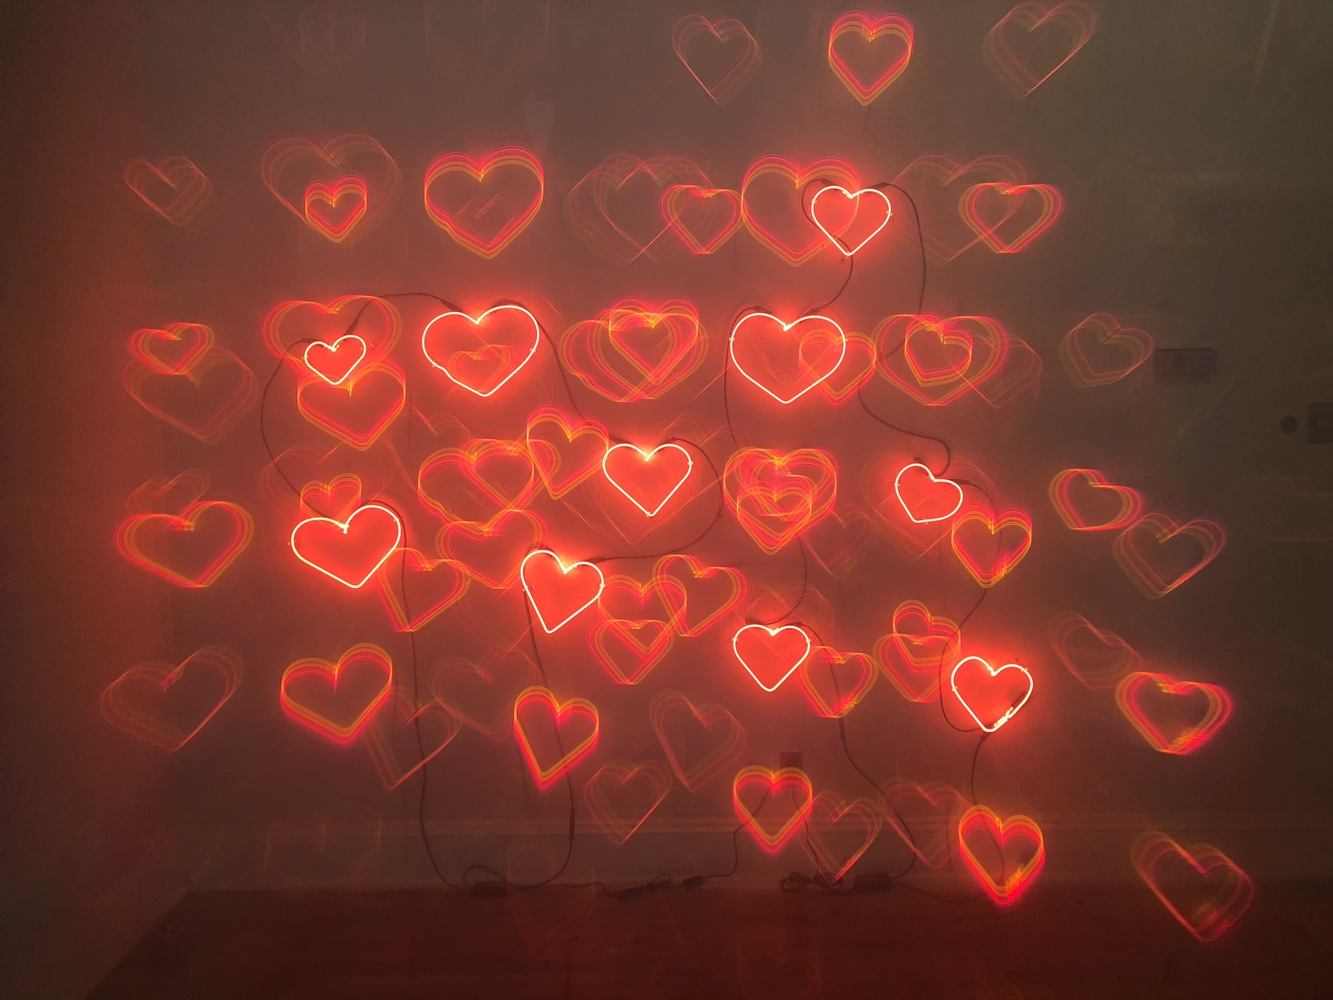 NEON Neon Hearts Wall (Diffraction), 2018